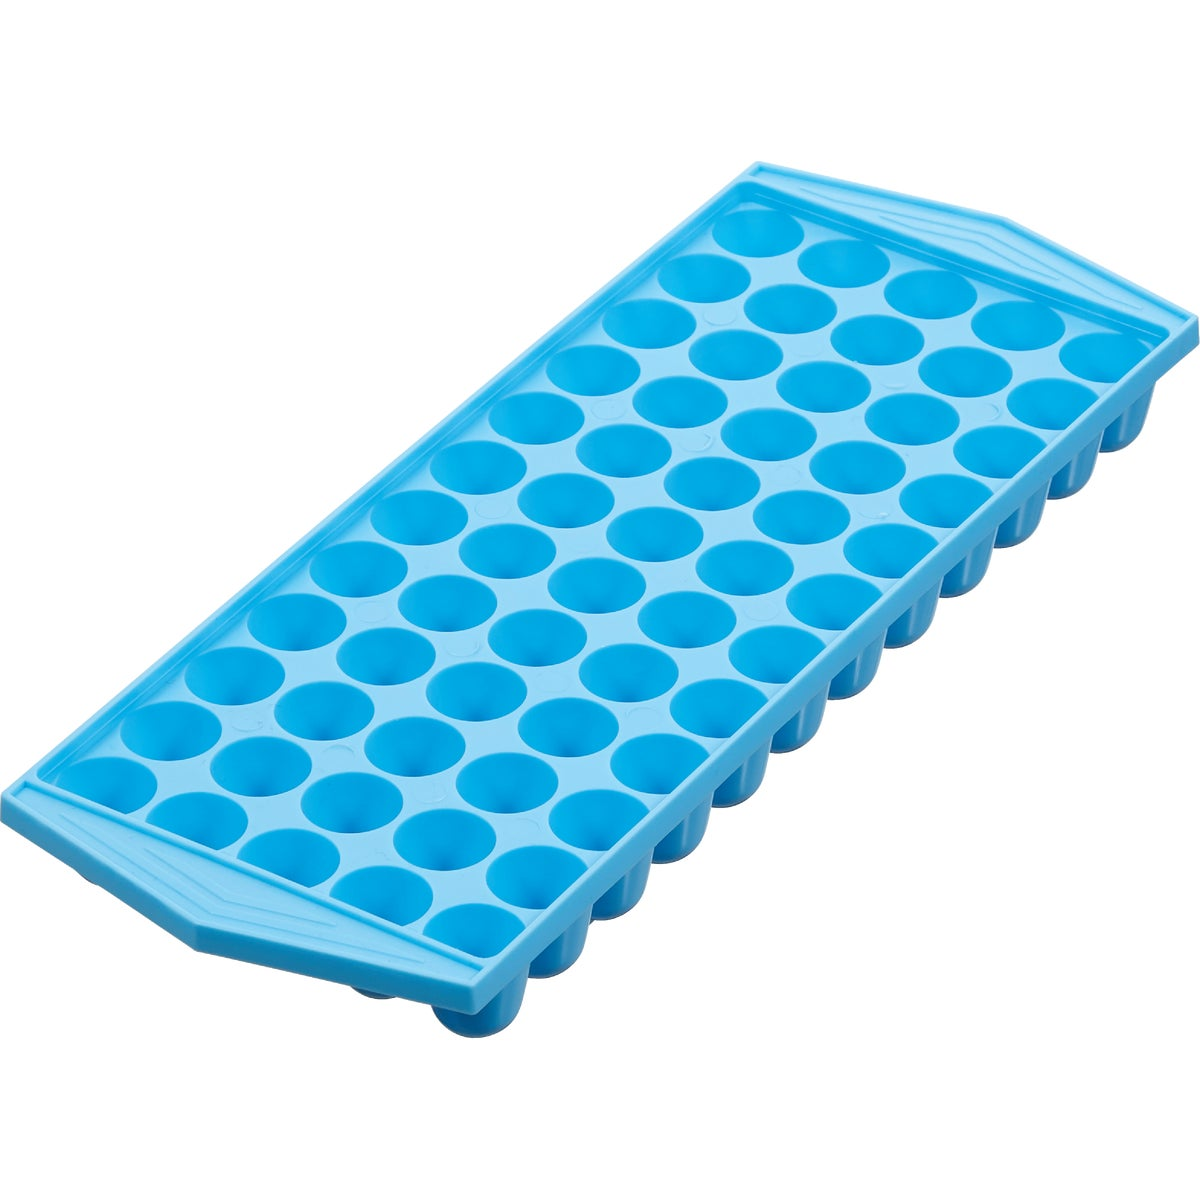 60 ICE CUBE TRAY - 00055 by Arrow Plastic Mfg Co